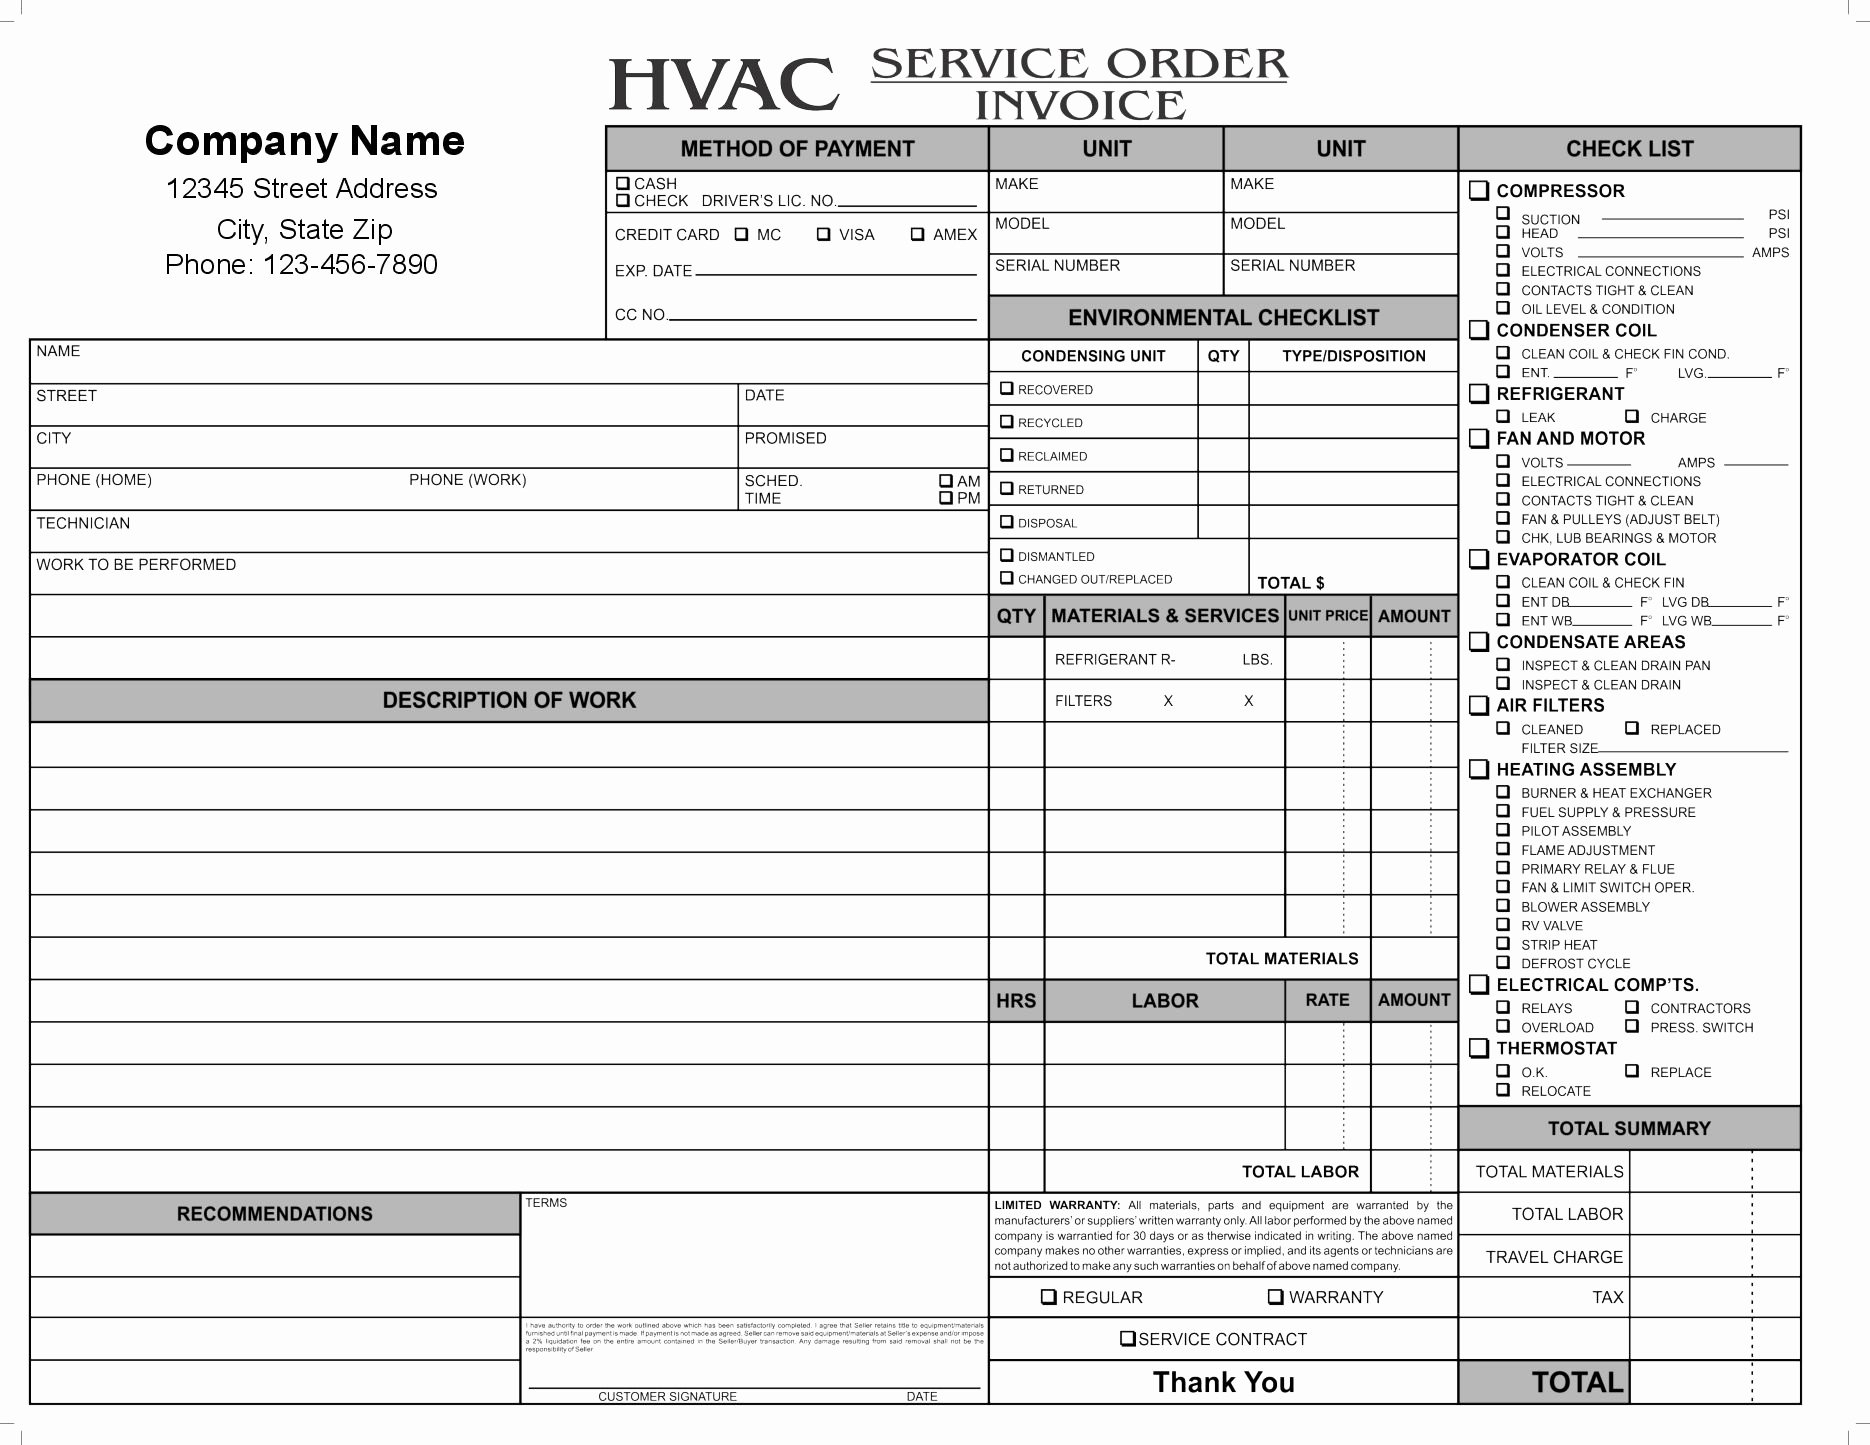 Hvac Service order Invoice Template New 11 Hvac Invoice Template Free top Invoice Templates Hvac